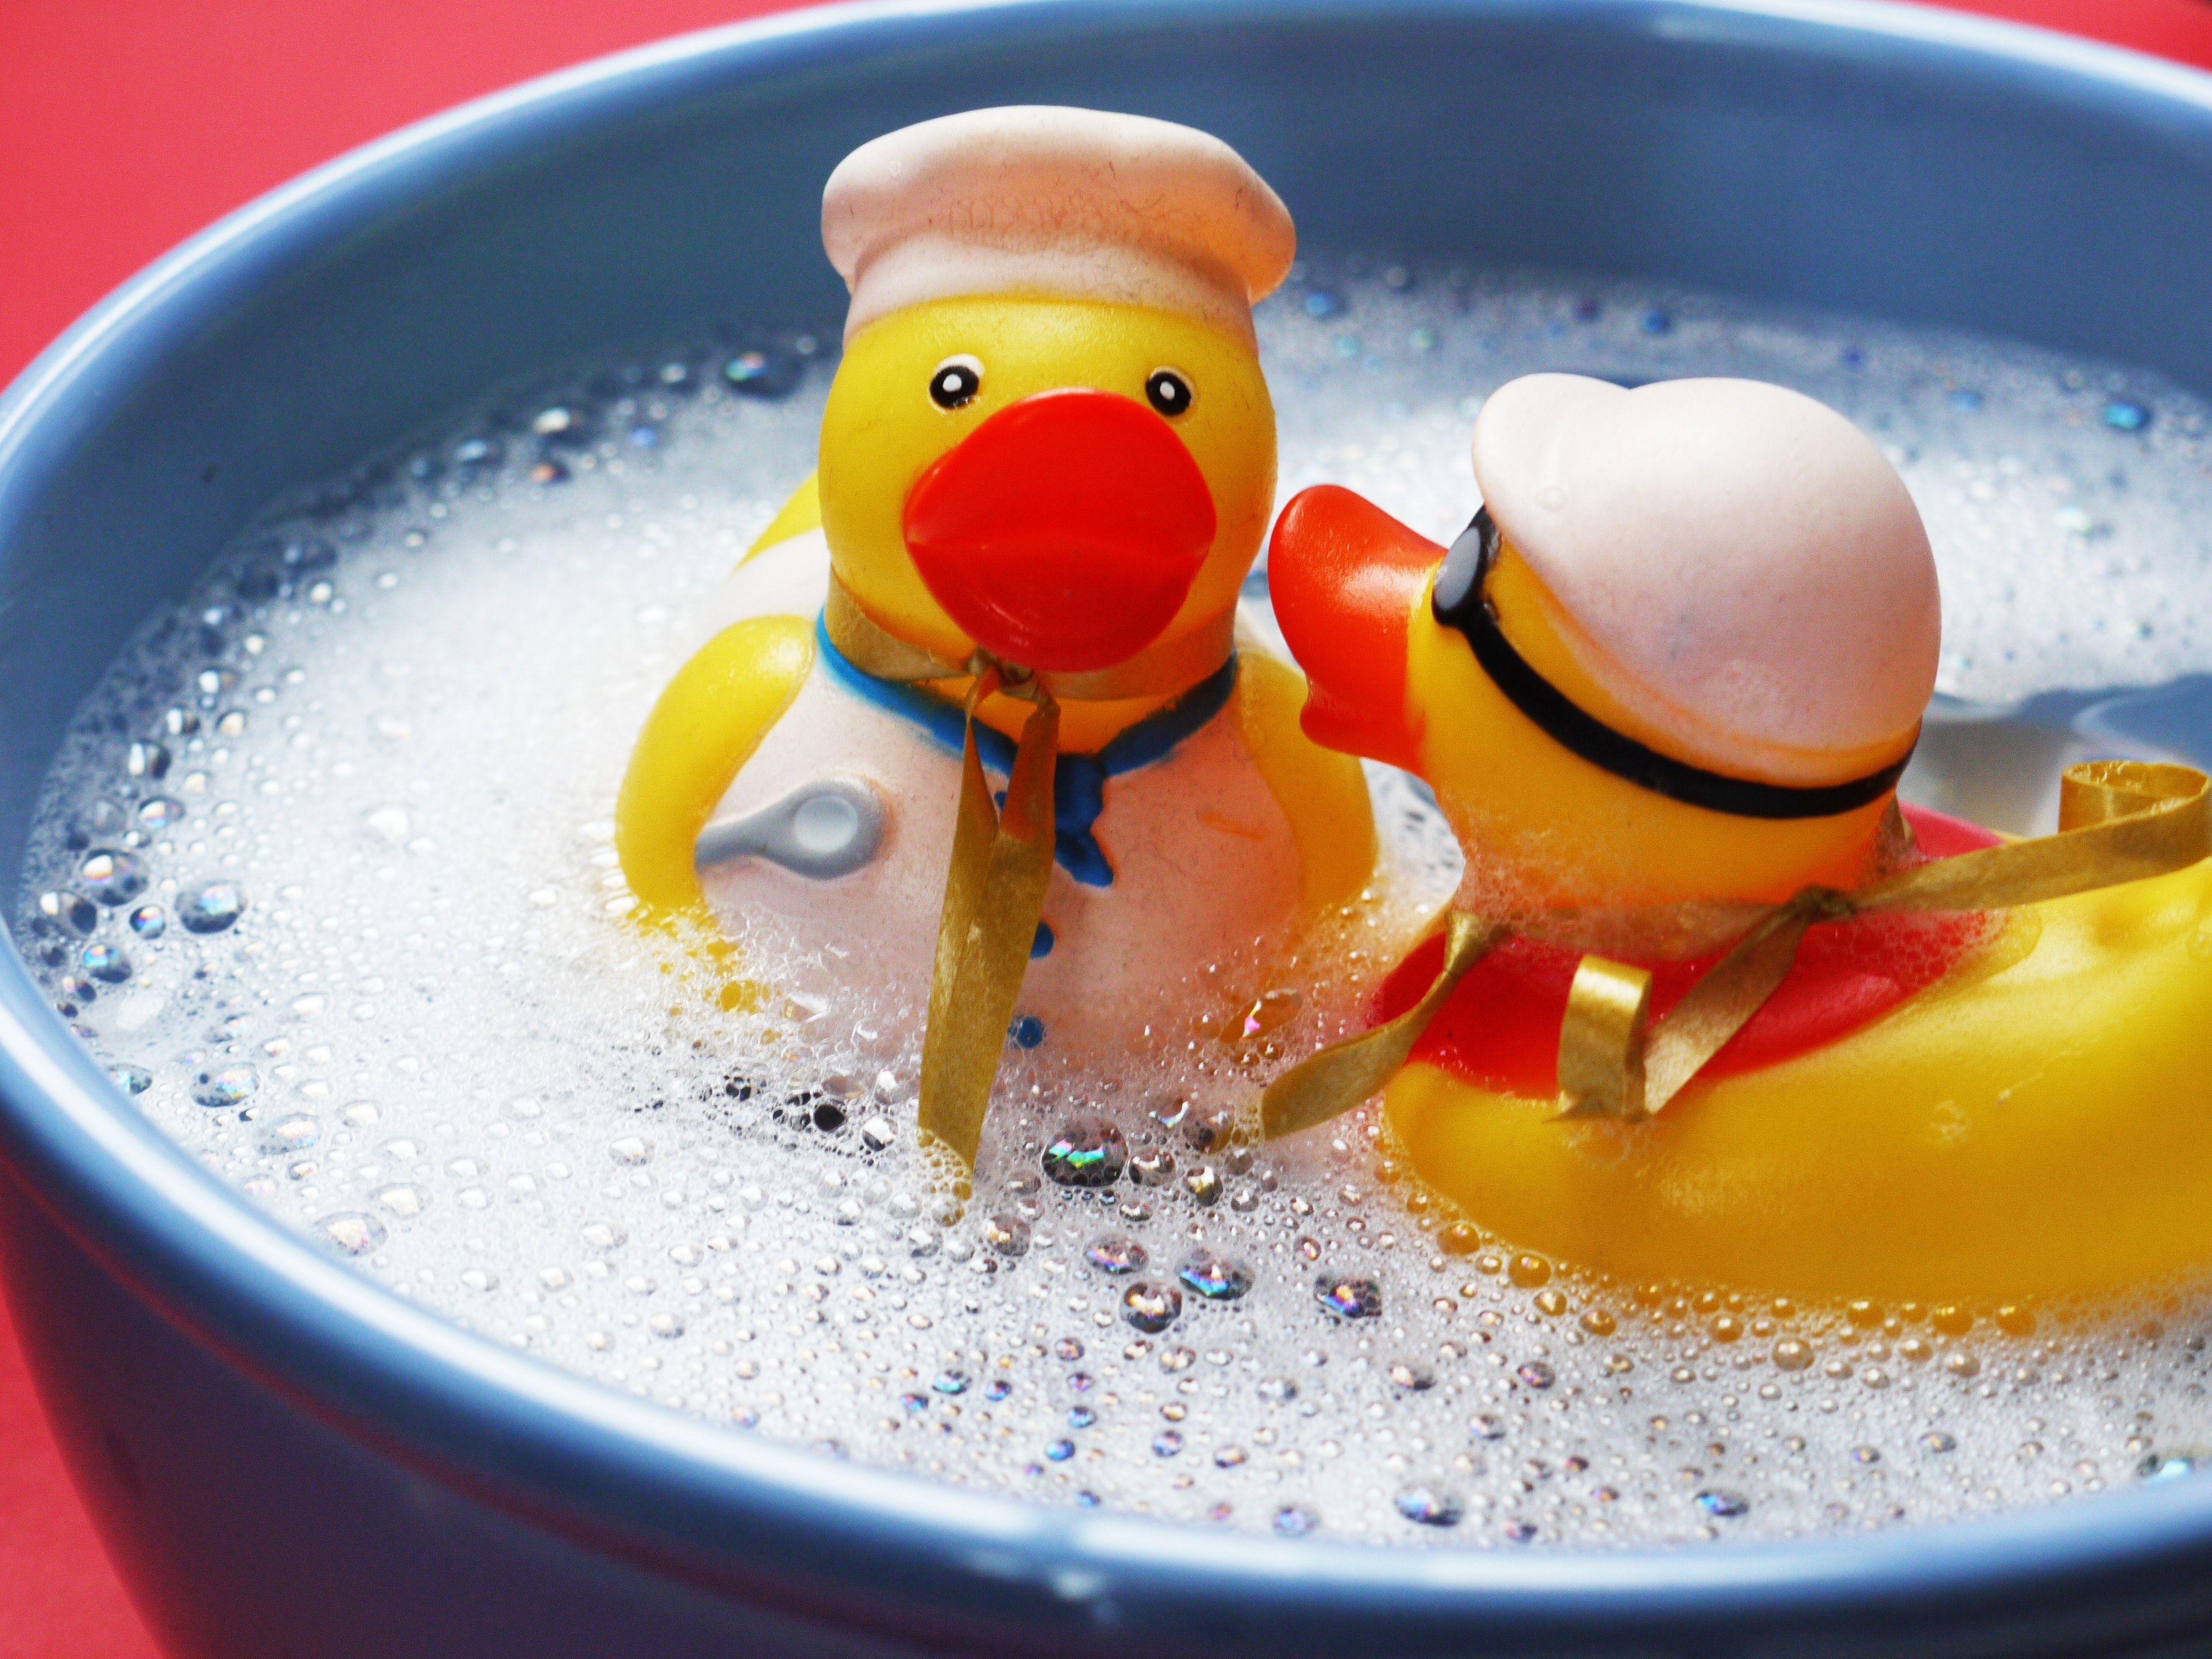 Free photo: Two Rubber Ducks on Water - water, toys, floating - CC0 ...